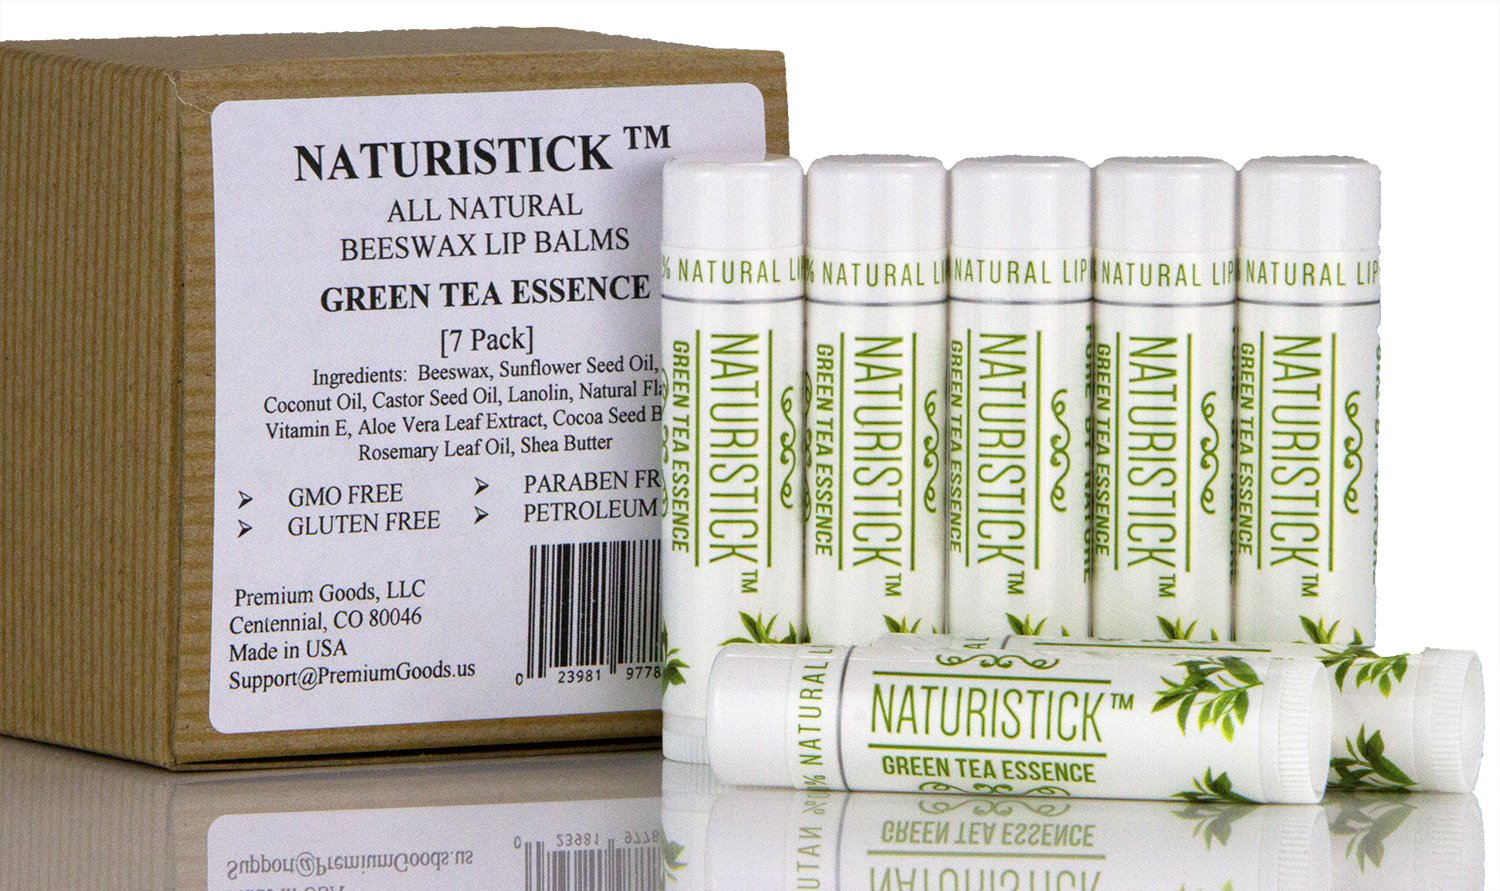 7 Pack Green Tea All Natural Beeswax Lip Balm Set by Naturistick  Best Chapstick for Dry  Chapped Lips  with Aloe Vera  Vitamin E  Coconut Oil for Men  Women and Kids  Made in USA Pure by Nature